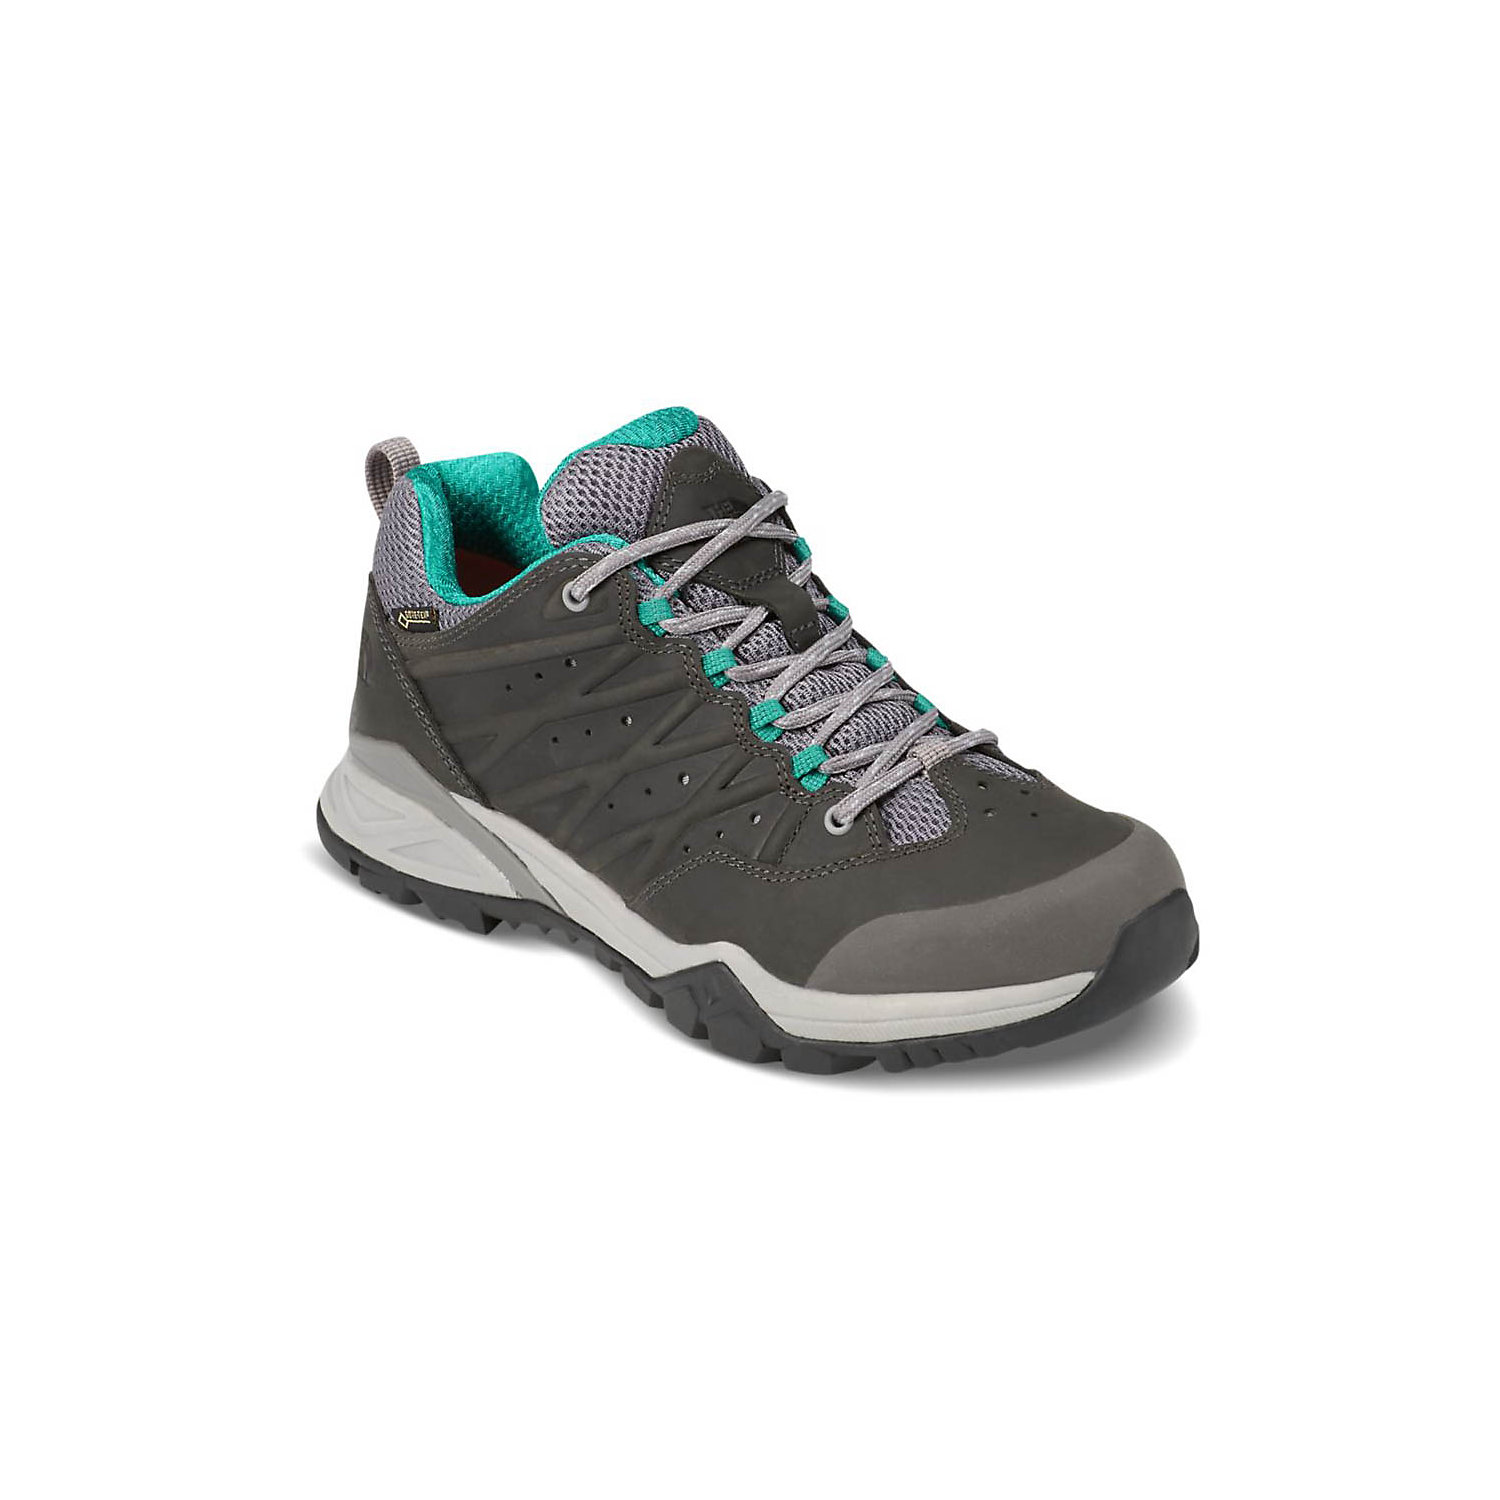 1c0e59fab The North Face Women's Hedgehog Hike II GTX Shoe